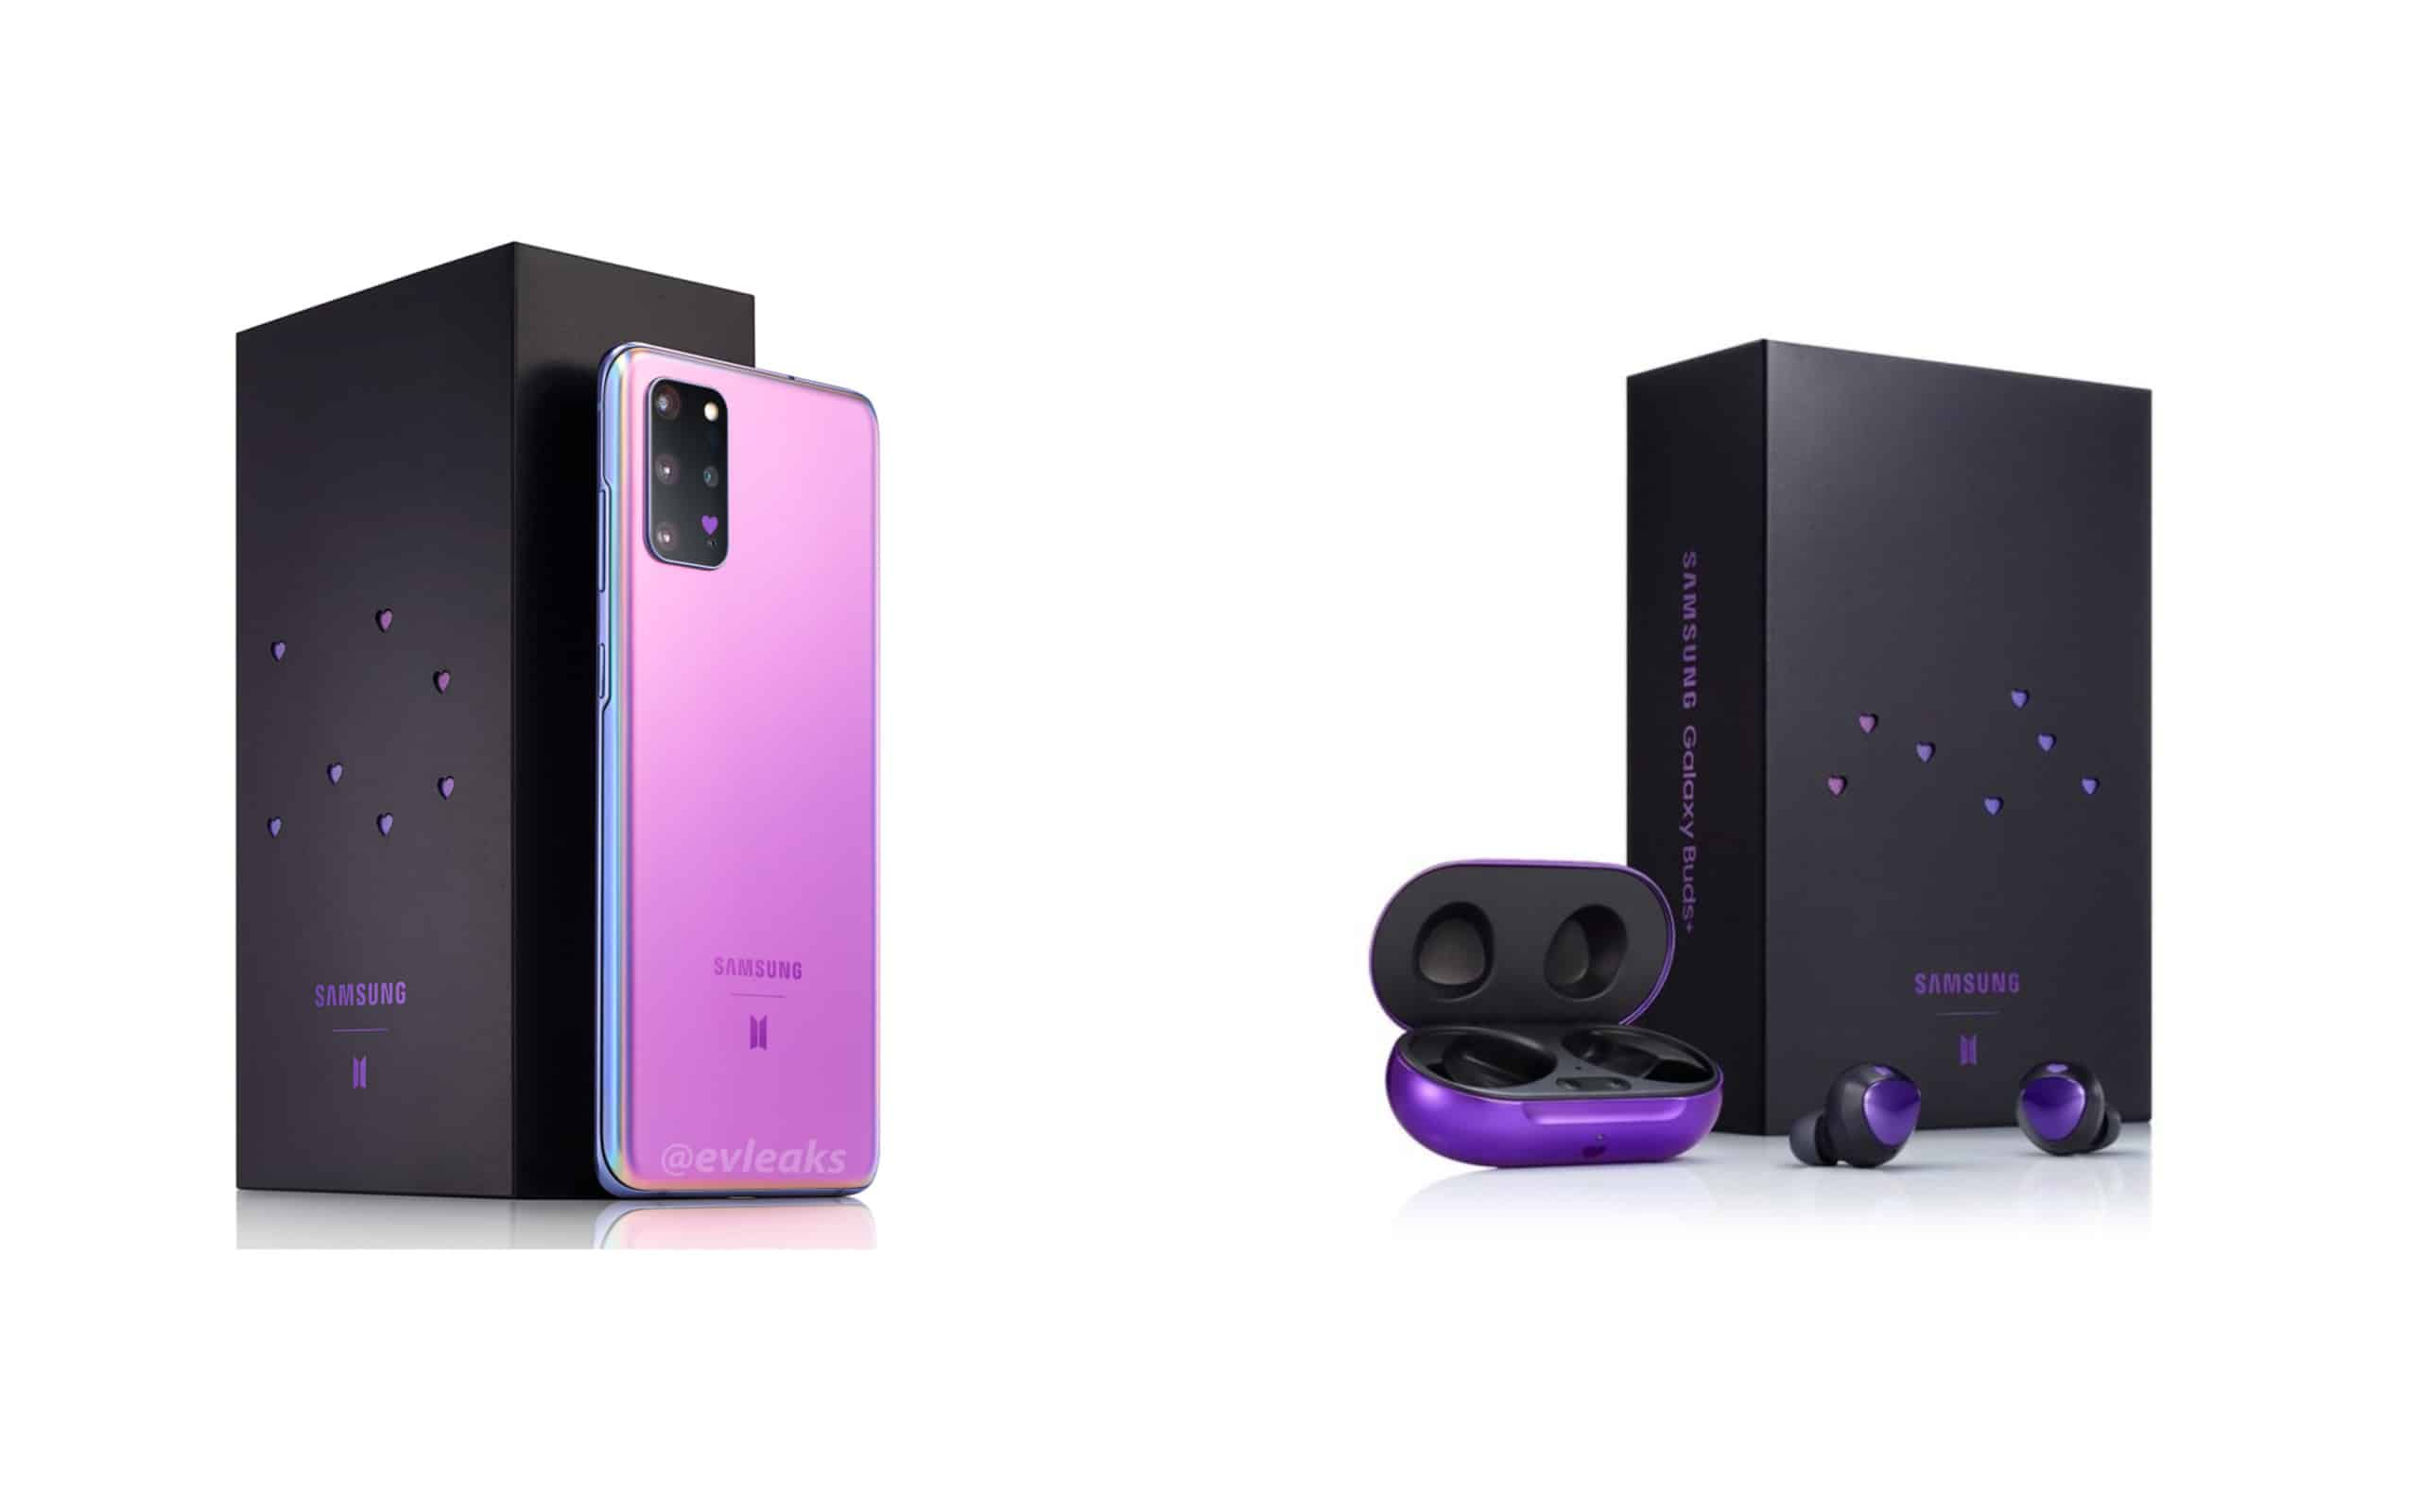 Sony Phone Vr Samsung Galaxy S20 Bts Edition Is Coming To Europe